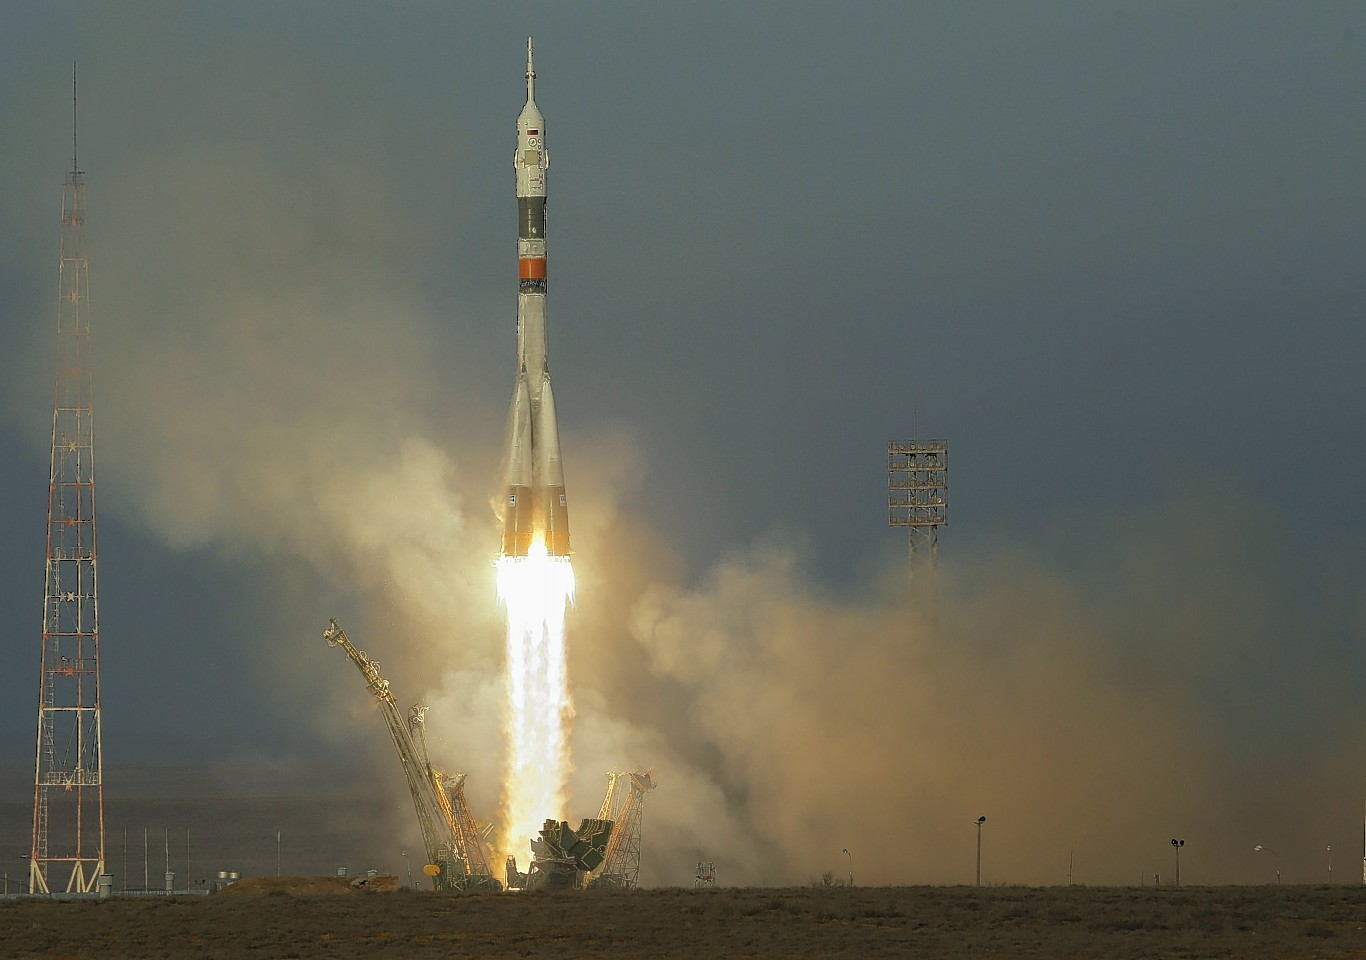 The Soyuz-FG rocket booster with Soyuz TMA-19M space ship carrying the crew to the International Space Station